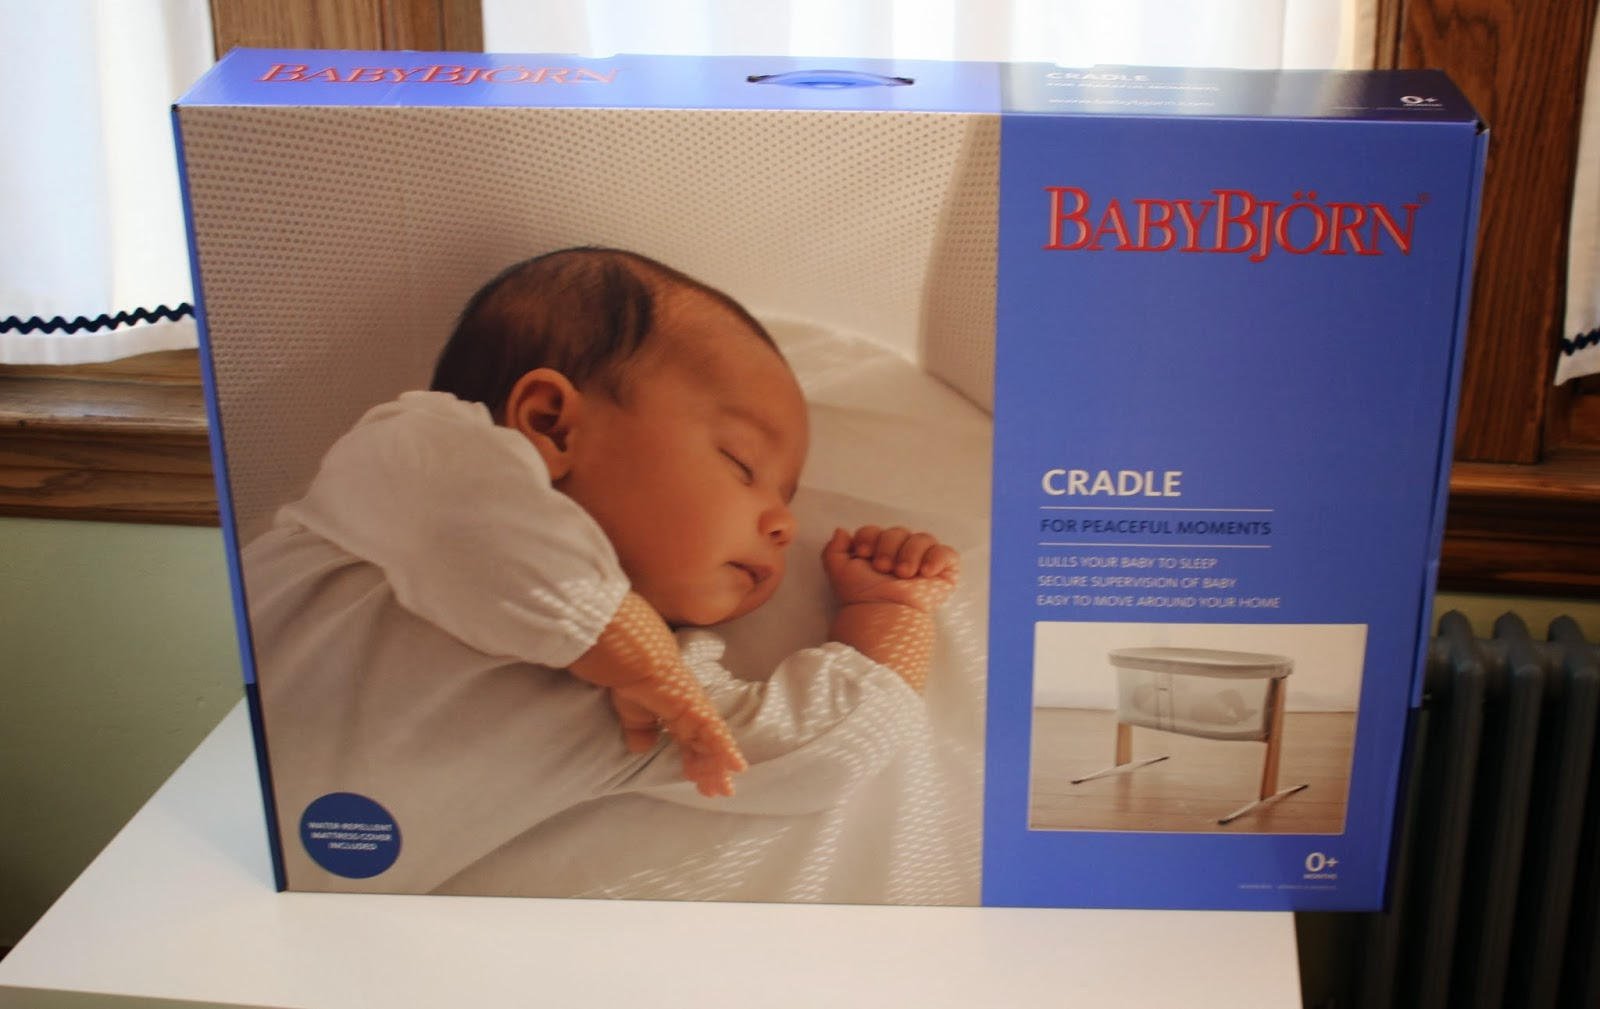 a9a9e4353c0 The BabyBjörn Cradle  A Review   Giveaway - The Chirping Moms